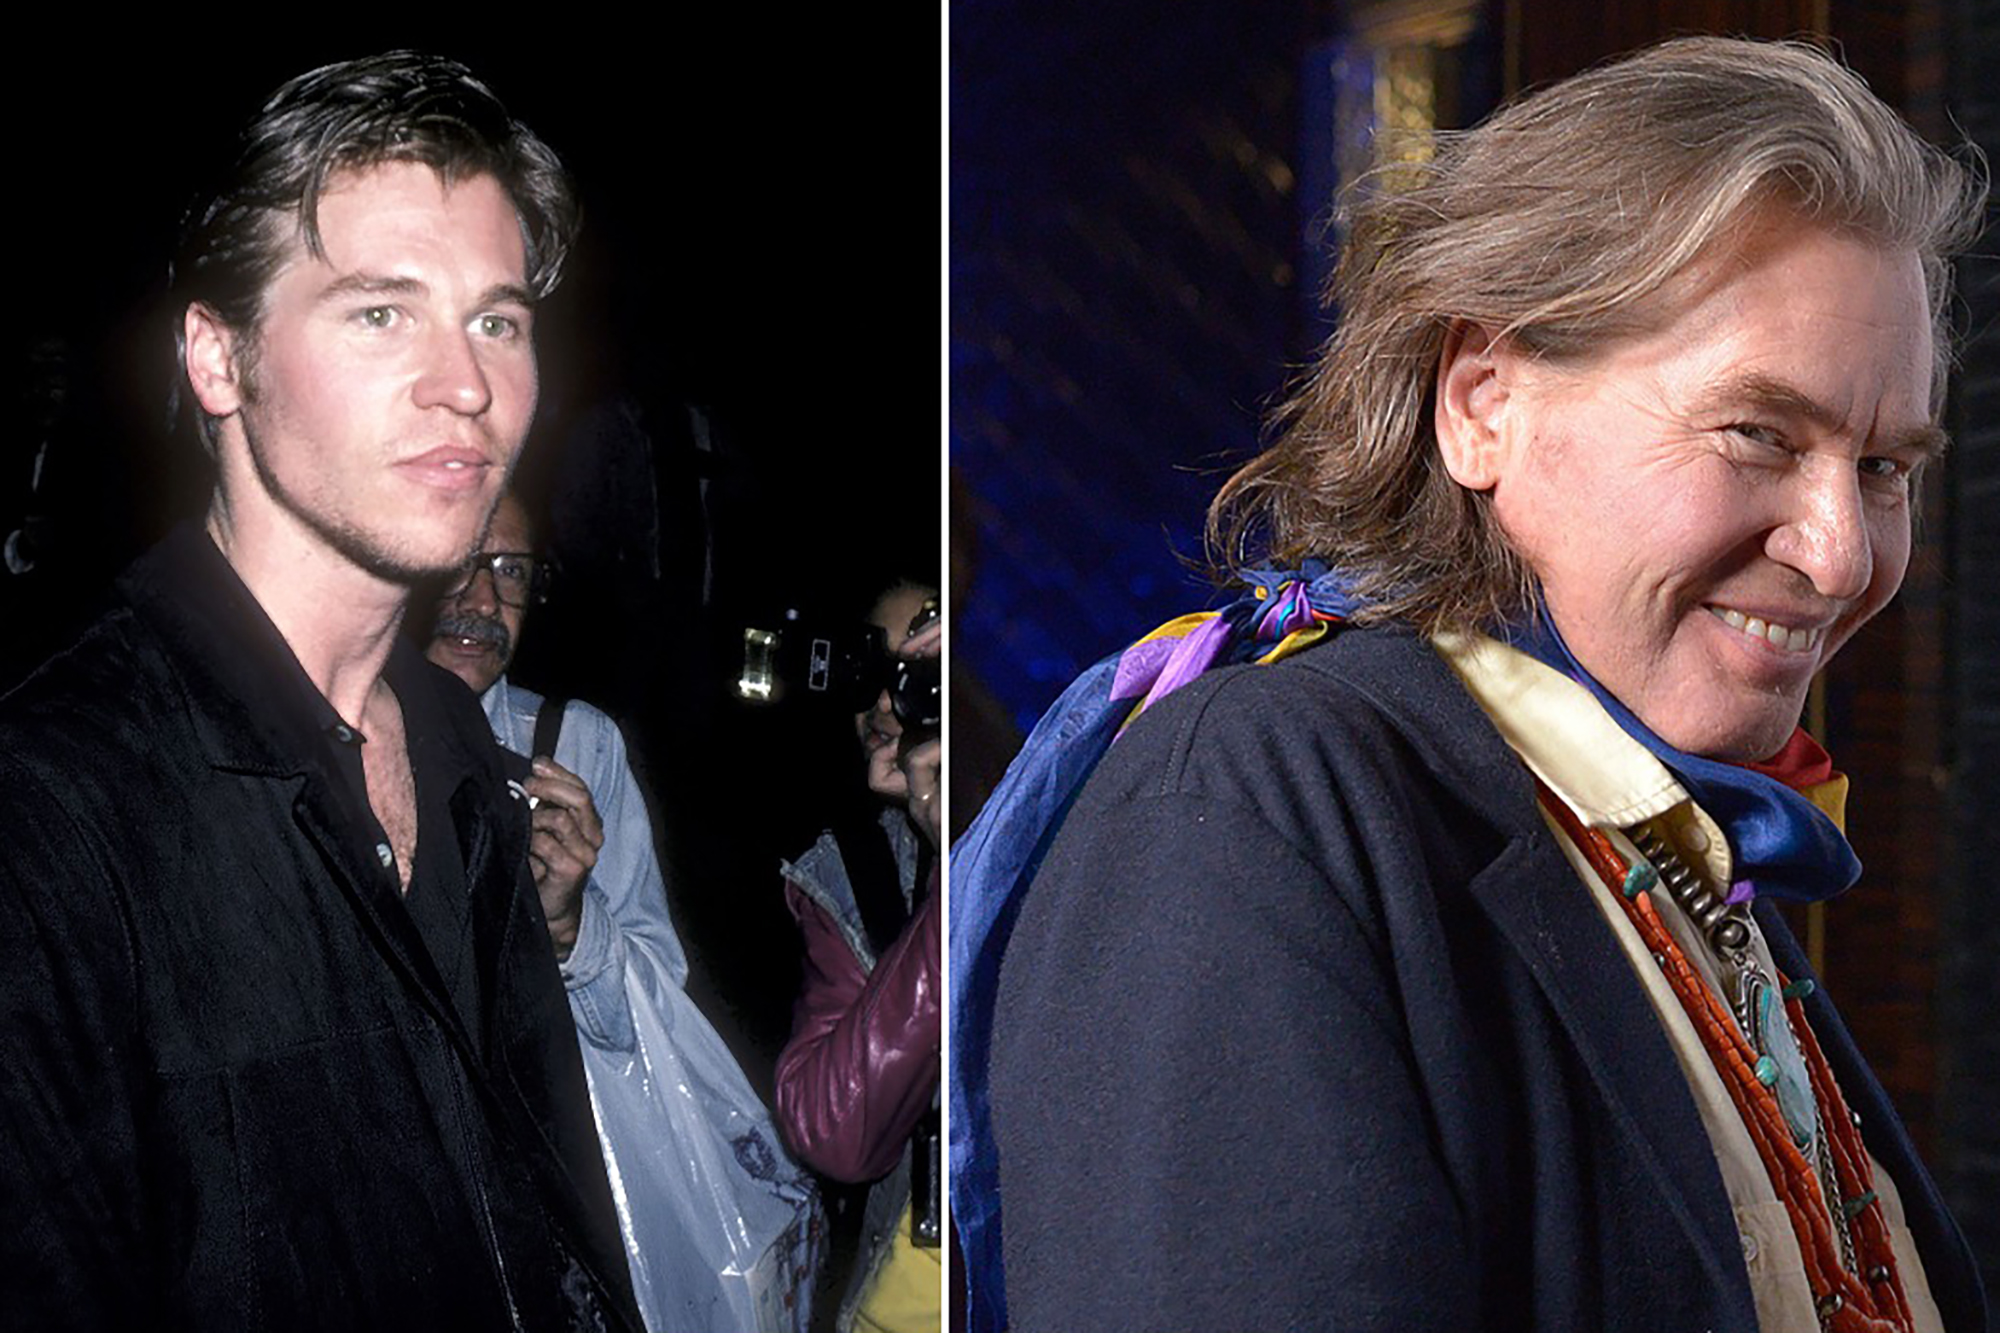 Val Kilmer documentary trailer shows 40 years of home videos